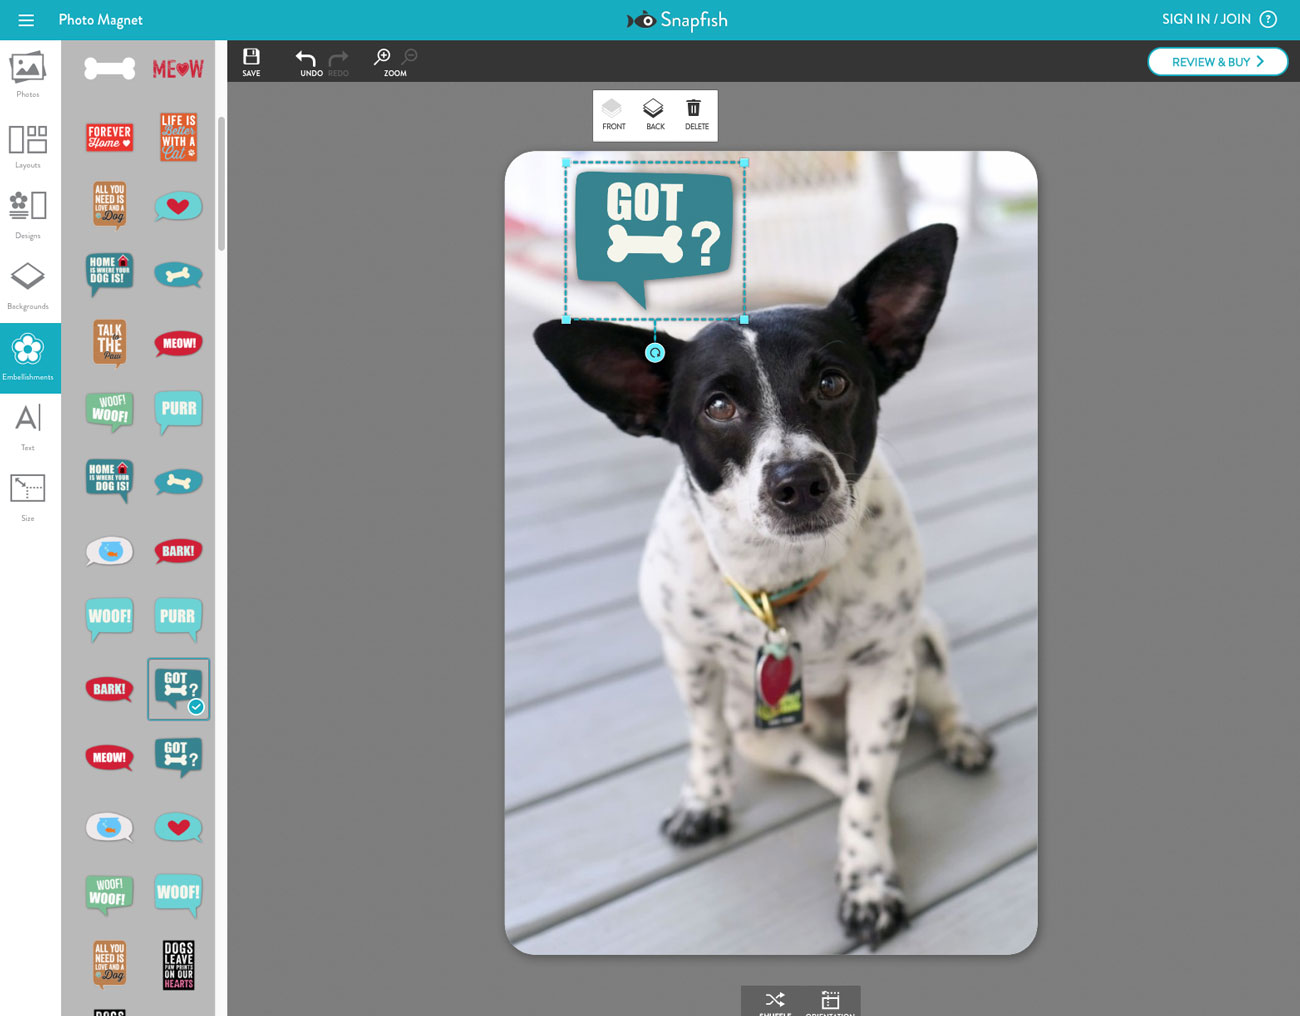 Sick of burying your favorite dog photos on your hard drive? Snapfish offers affordable and adorable photo gifts for pet lovers!